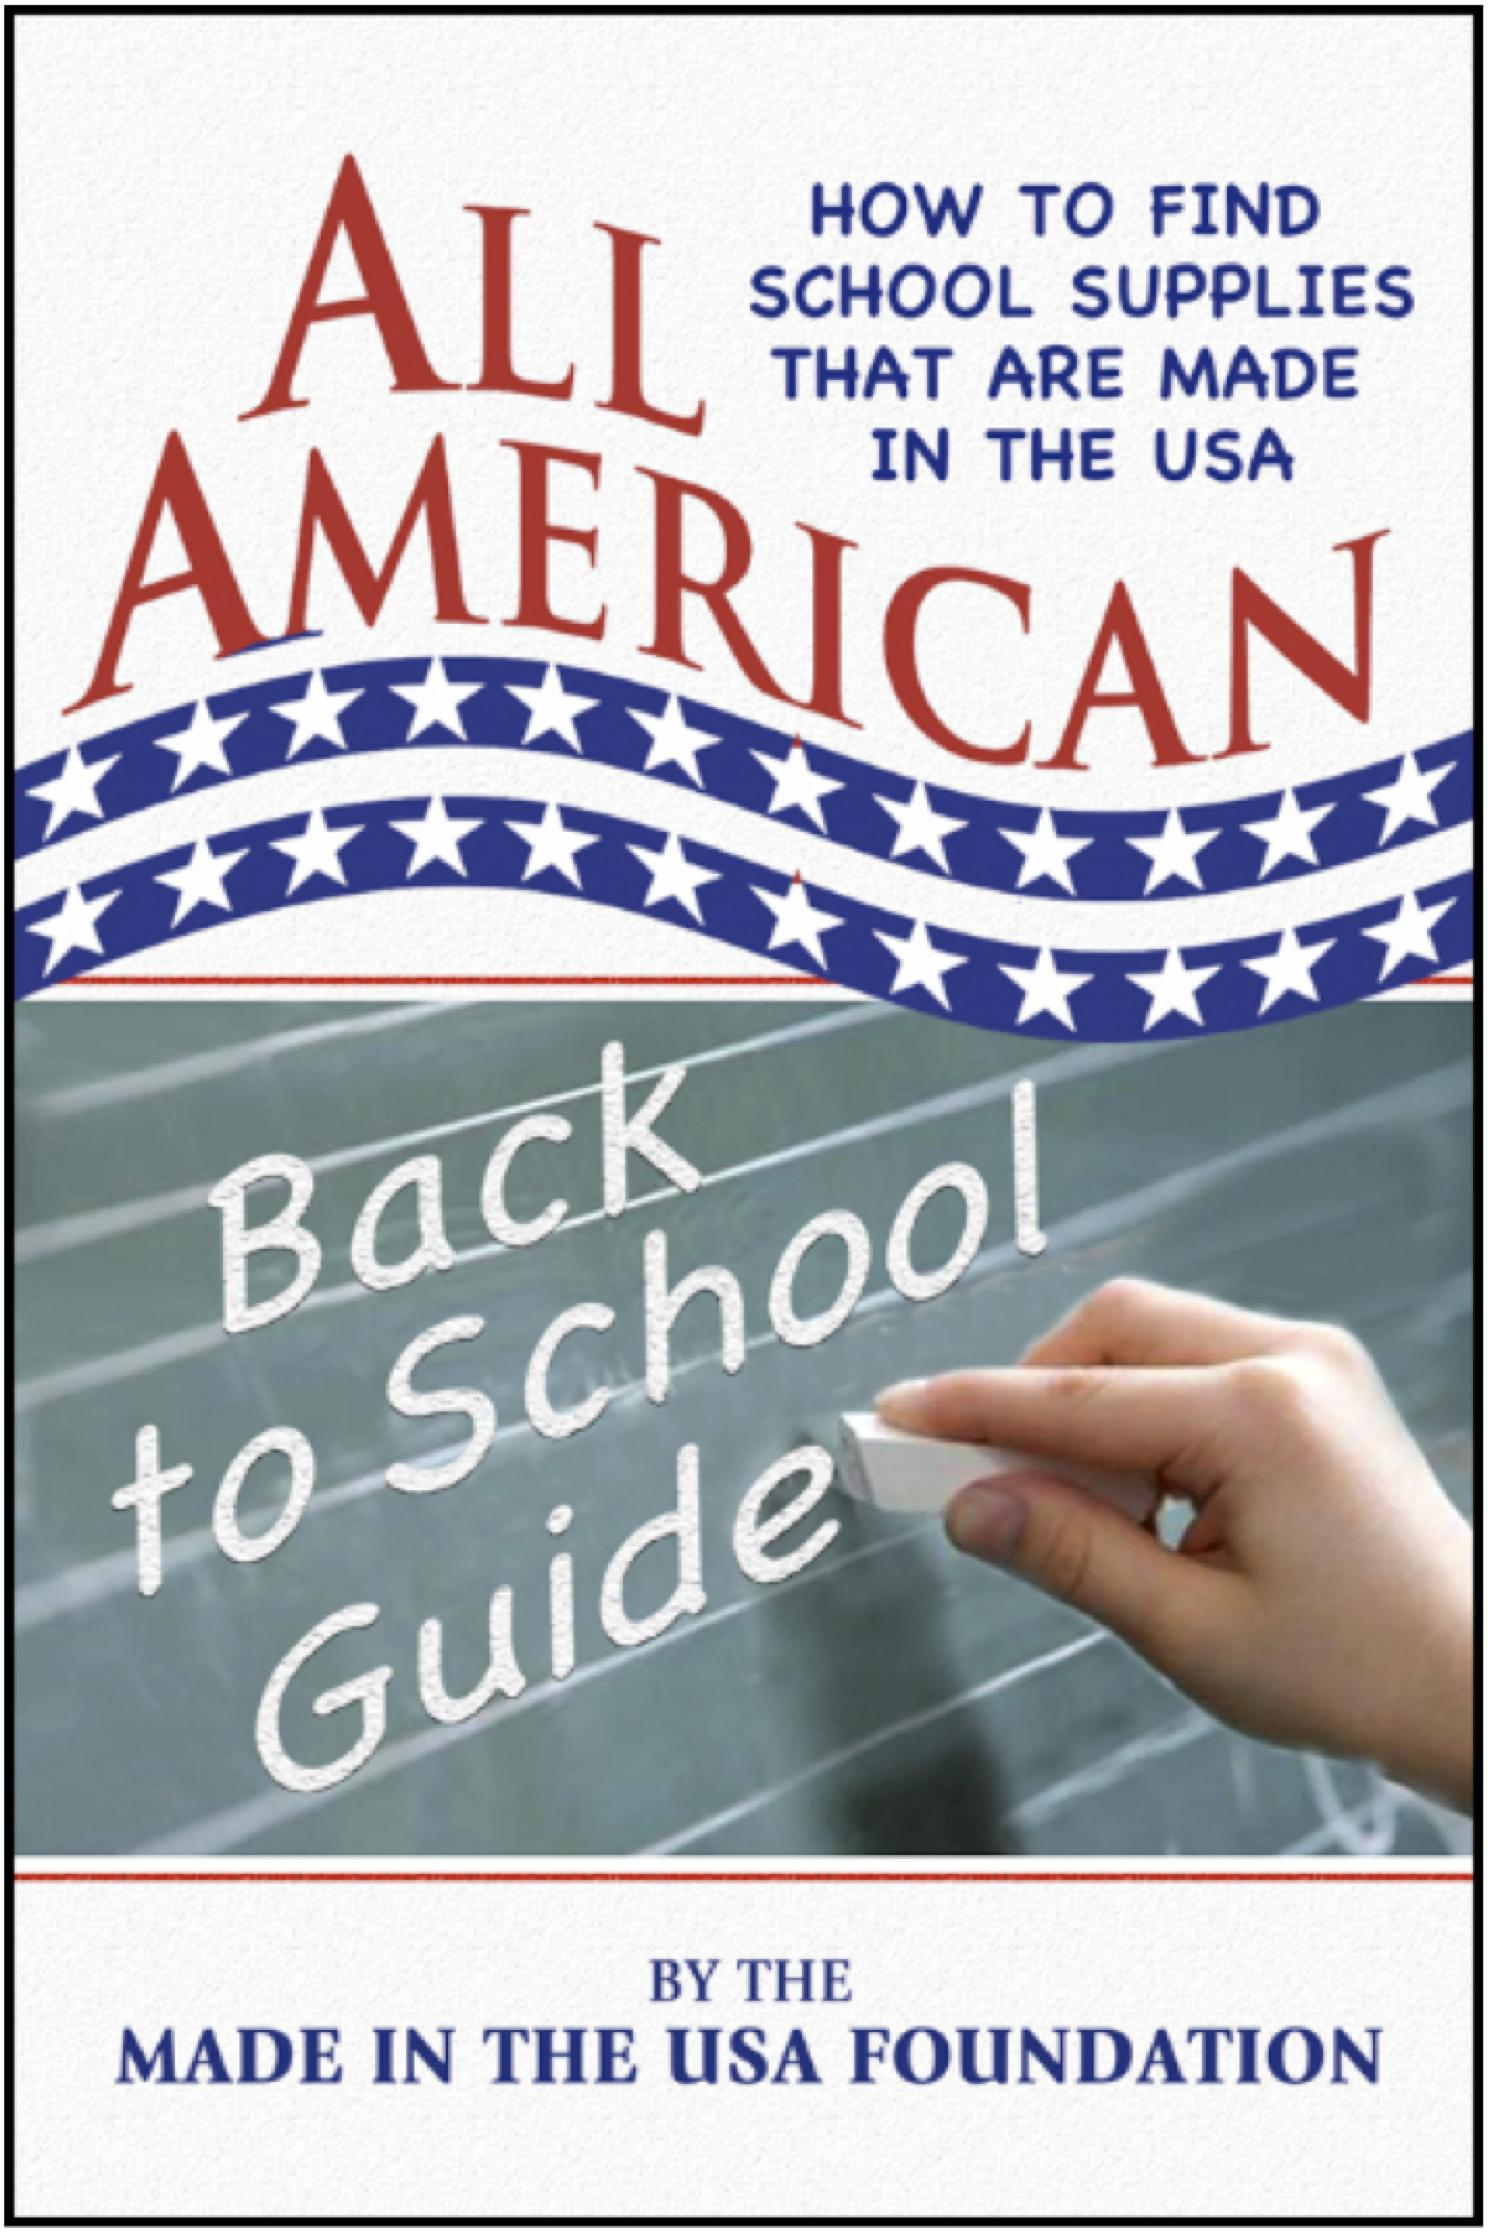 All American Back to School Guide EB2370004485997